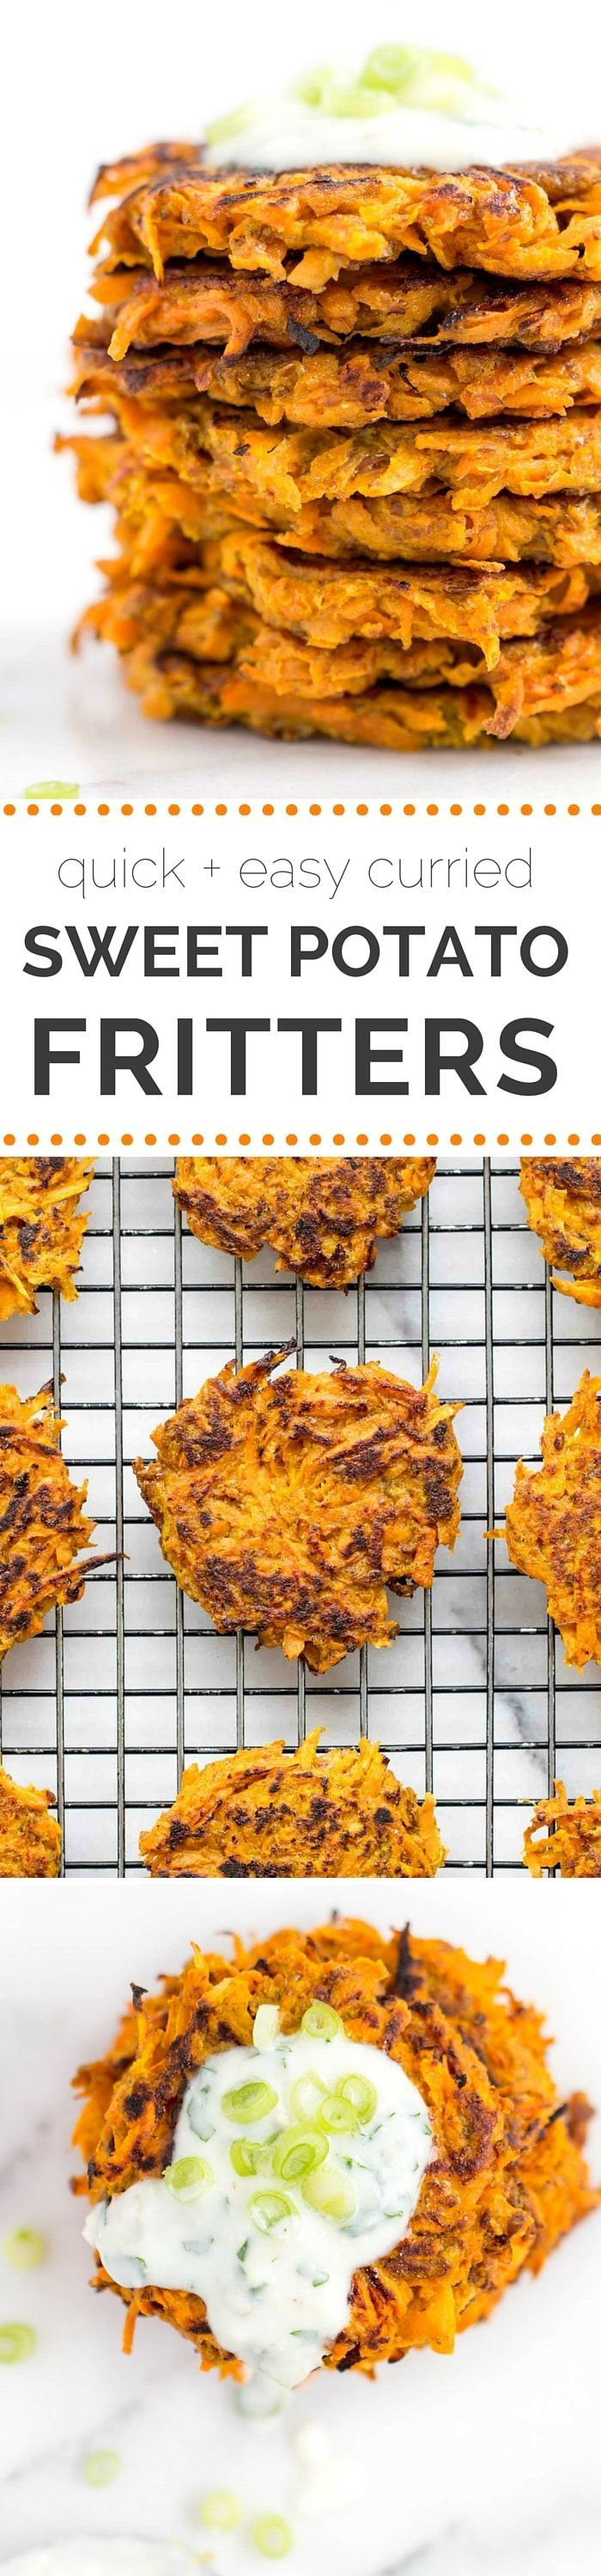 Curried Carrot + Sweet Potato Fritters...so simple to make and packed with tons of flavor!! {vegan + gluten-free}